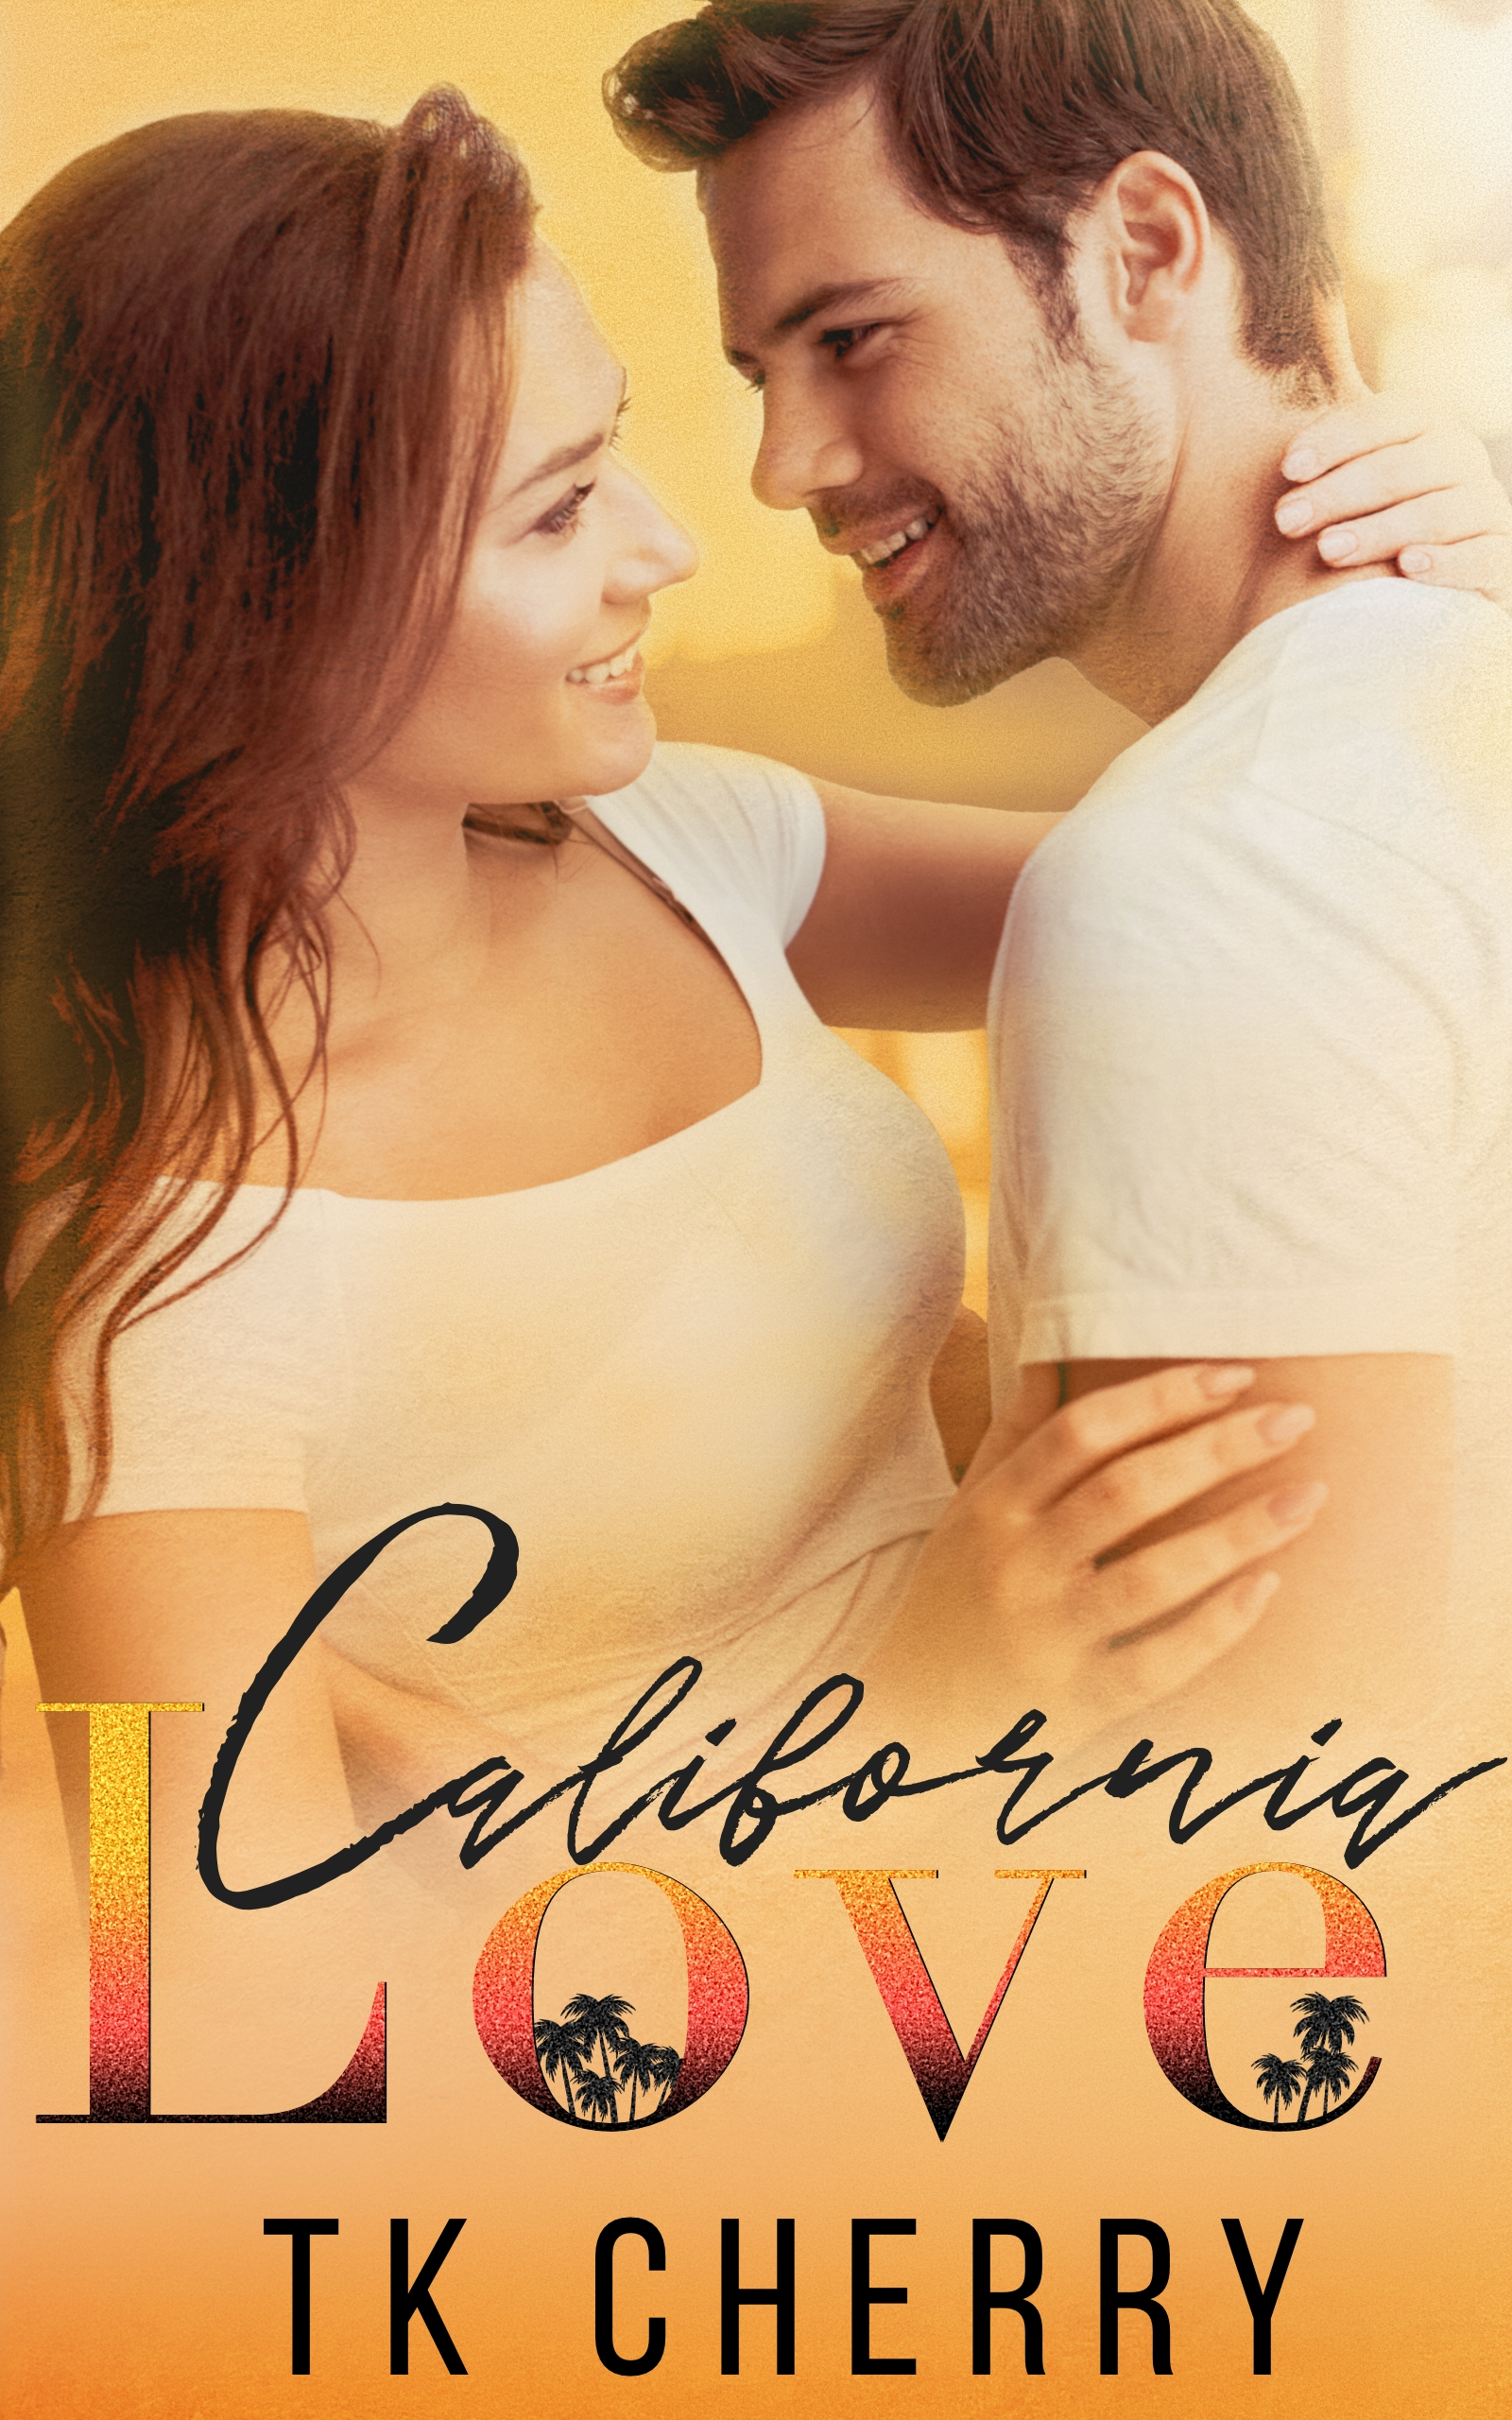 tk-cherry-california-love-ebook